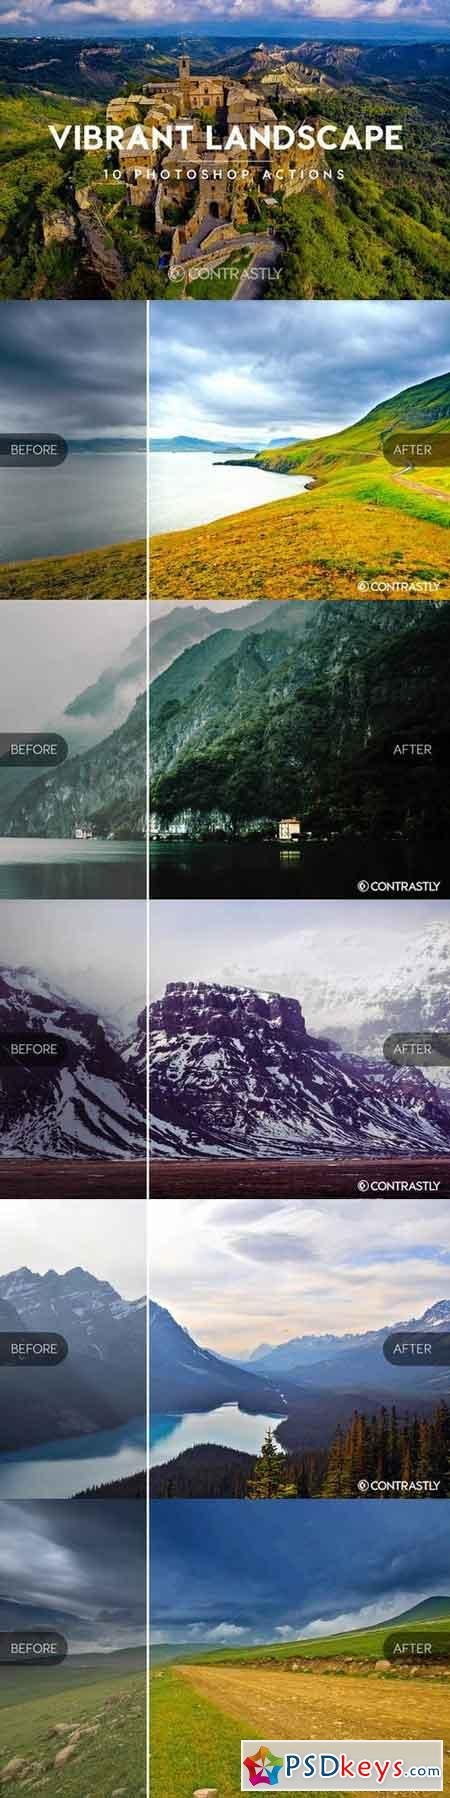 Vibrant Landscape Photoshop Actions 664821